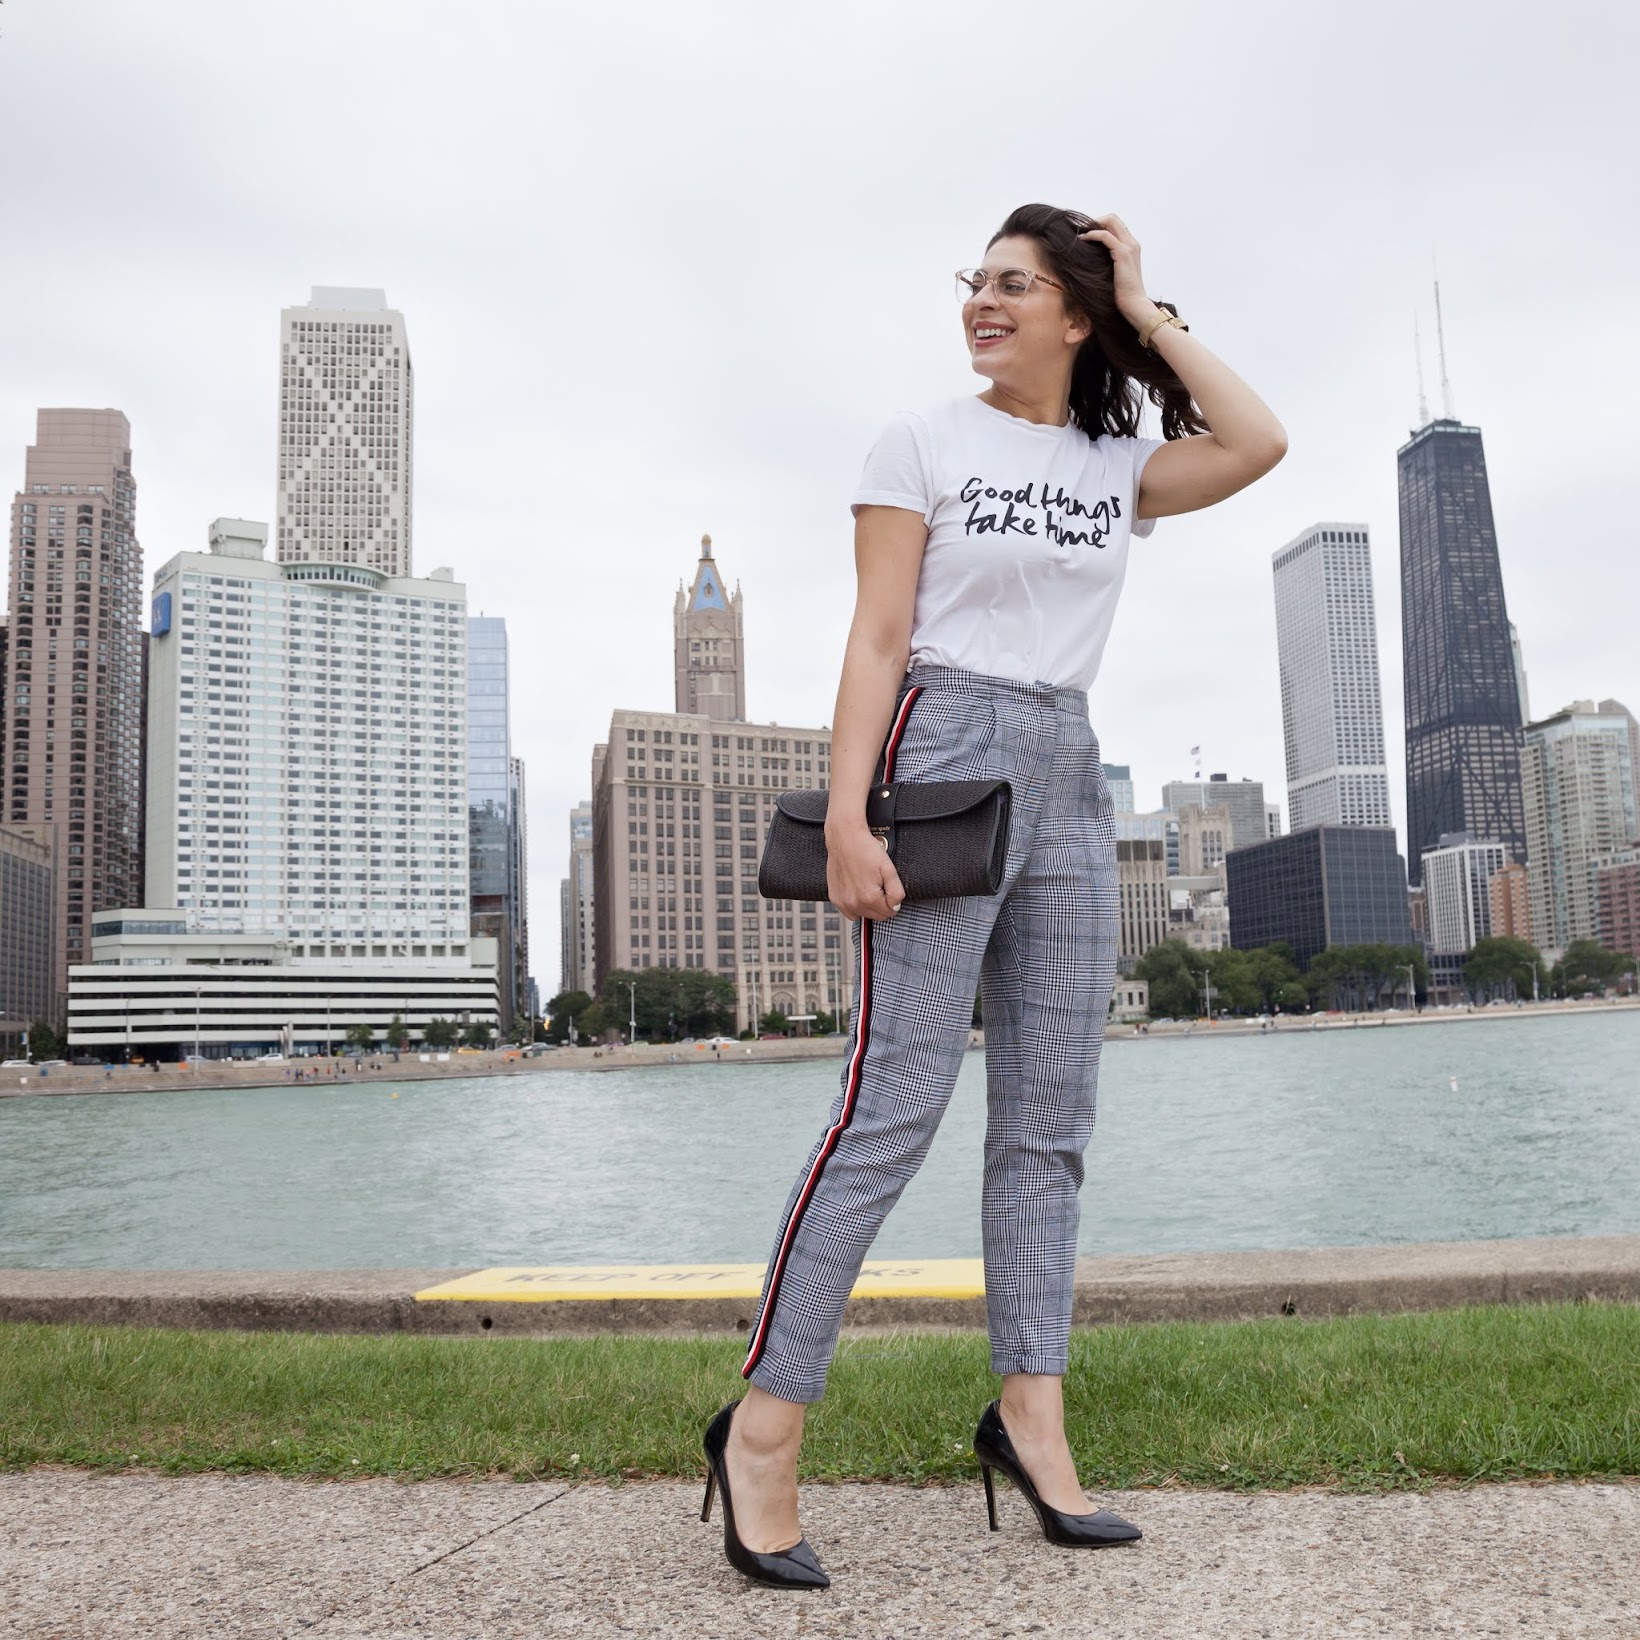 improvised look, plaid pants with side stripe, SHEIN Good Things Take Time Tee, graphic tee look, graphic tees from SheIn, SheIn outfit, SHEIN Contrast Tape Side Plaid Pants, business casual look, pantalones a cuadros, look casual, my outfit of the day, Chicago street style, Chicago style blogger, Chicago blogger, Chicago Latina blogger, Chicago fashion bloggers, Latina style blogger, Latina fashion blogger, bilingual fashion blogger, Puerto Rican blogger, Boricua blogger, bloguera de moda, bloguera de estilo, Desiree Velasquez, Neutrogena Moisture Smooth color stick, Neutrogena color balm, Kate Spade straw clutch, clutch de paja, Steve Madden Protos pumps, Steve Madden pumps, Steve Madden heels, BeBuddha Jewelry, SheIn discounts, Zyloware glasses, Zyloware frames, Via Spiga clear frames, Mockberg mesh watch, Mockberg watches, Mockberg gold watch, Breeze Art Creatives, Breeze Art Creatives photography, Olive Park Chicago, Chicago skyline, places in Chicago to take photos, Chicago photo ops, places in Chicago to take pics, cool Chicago parks, Good Things Take Time, sitios en Chicago para sacar fotos, transitional look, Milton Lee Olive Park, summer to fall looks, positive vibes, vibras positivas, Fashionlingual, Plaid Pants & Positive Vibes